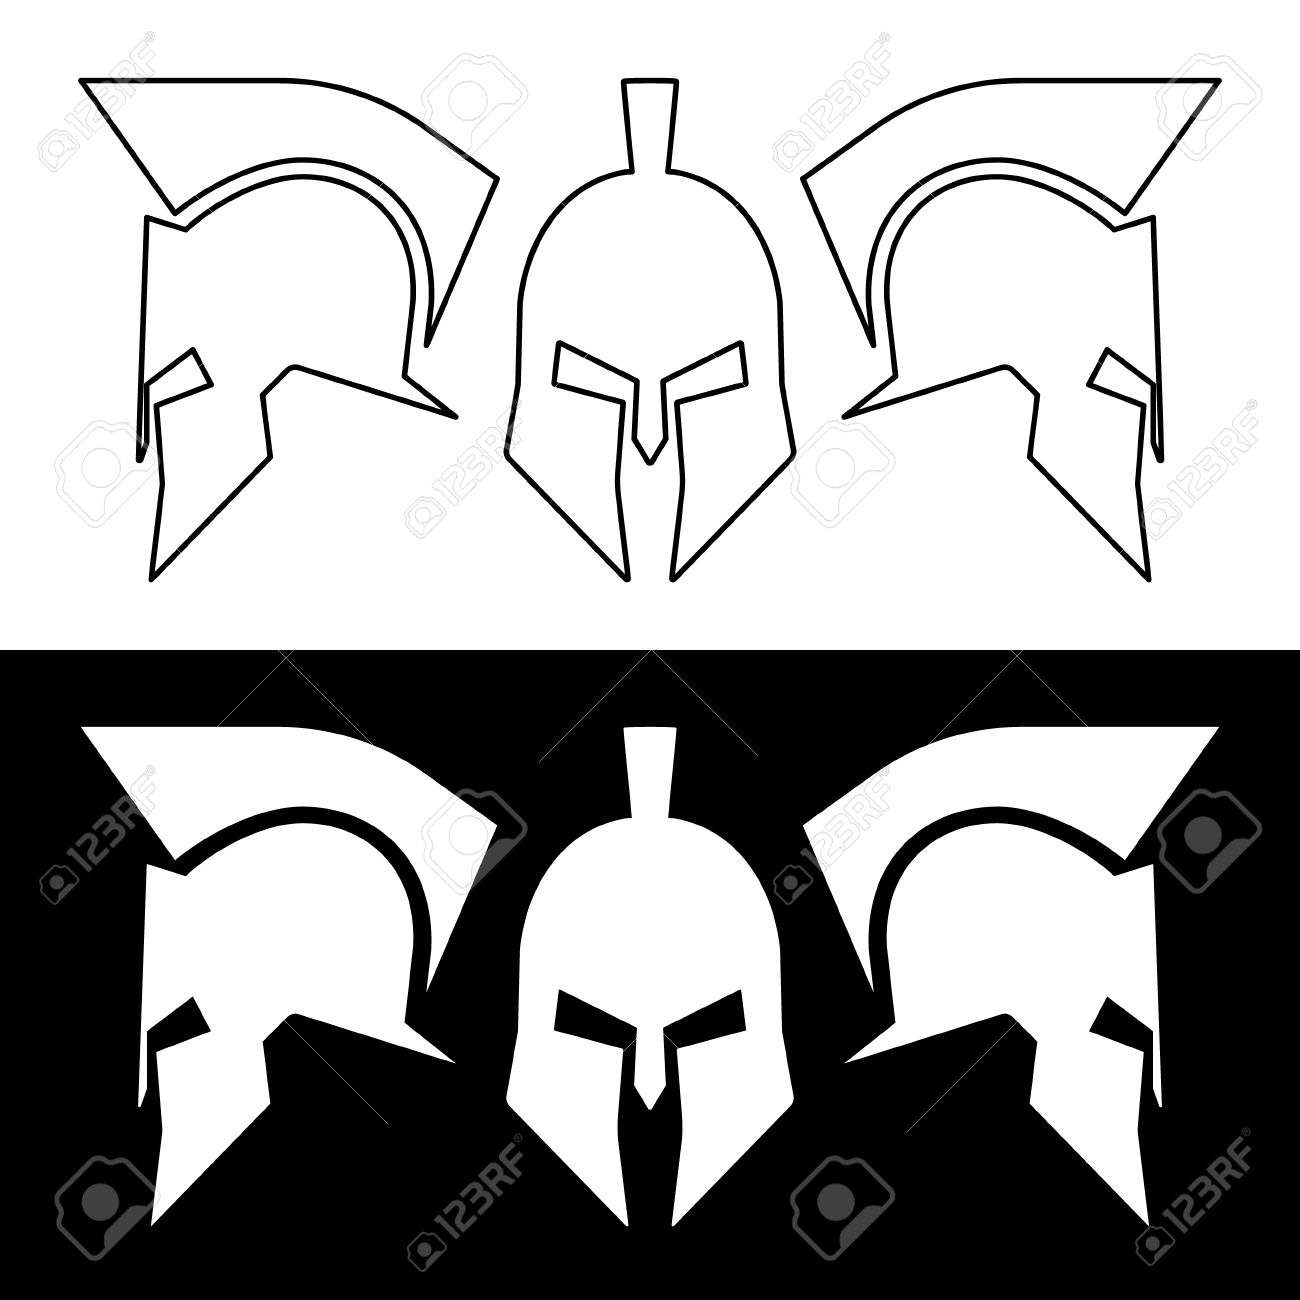 Ancient Roman Or Greek Helmet Helmets Front And Side View